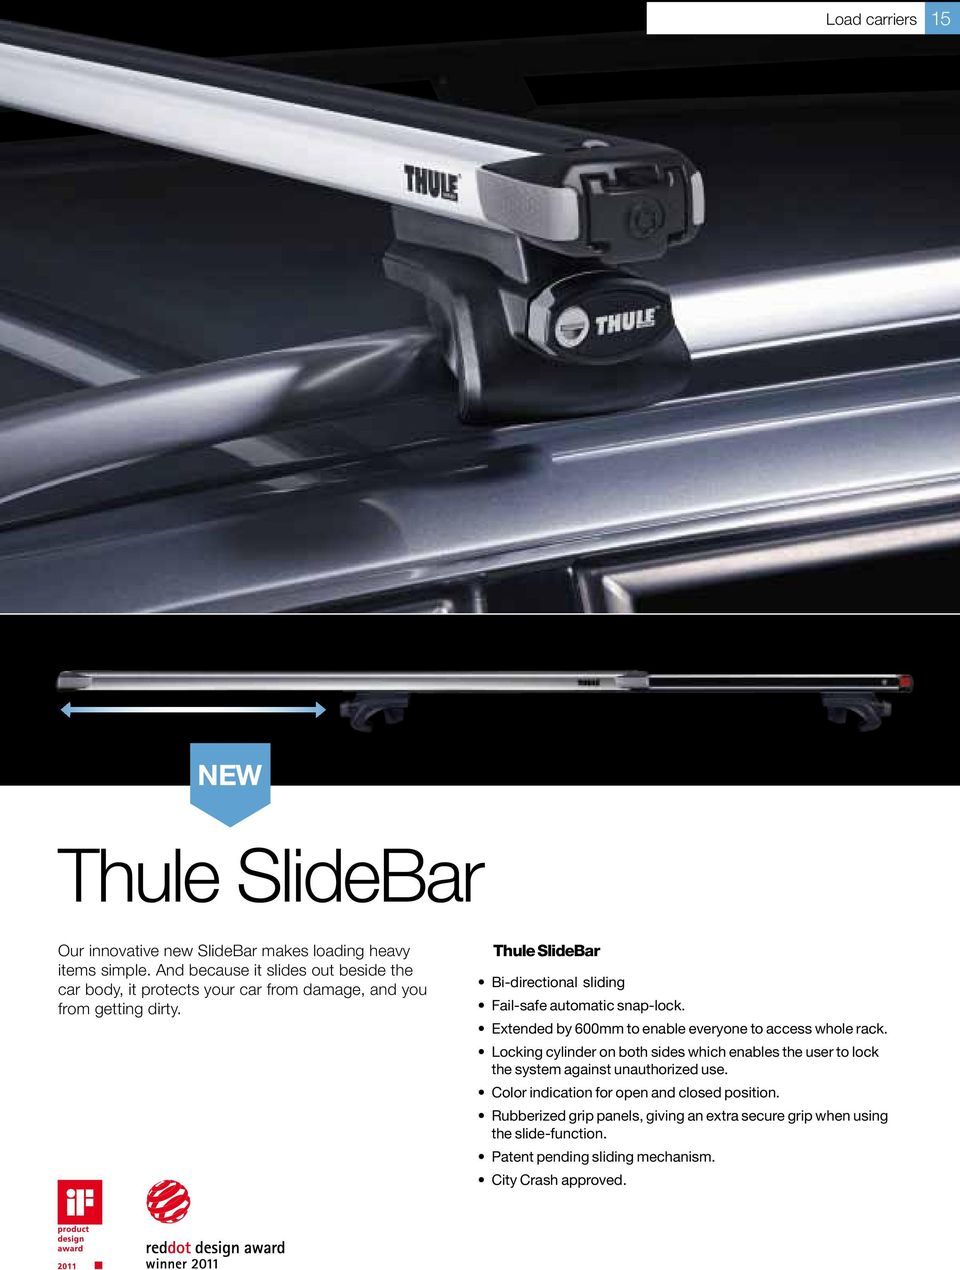 Thule SlideBar Bi-directional sliding Fail-safe automatic snap-lock.  Extended by